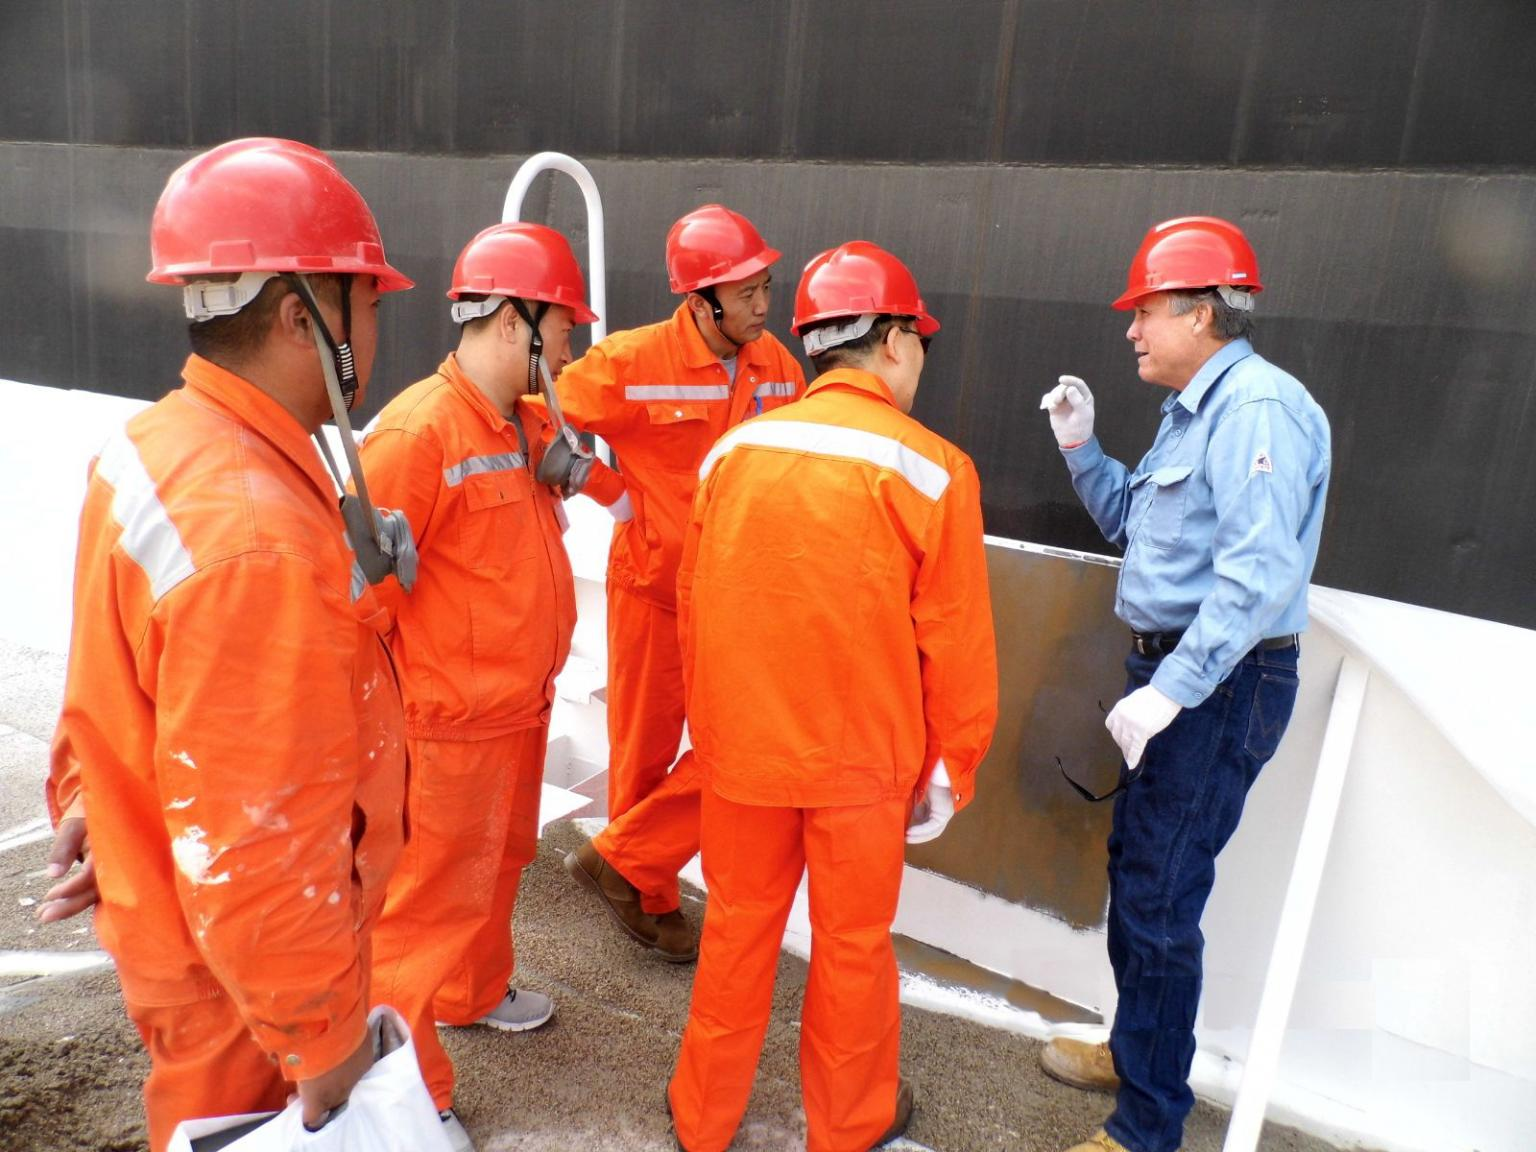 Ningbo Xingang Fuel Storage Company consulted with EonCoat regarding the use of the smart coating at its oil terminal